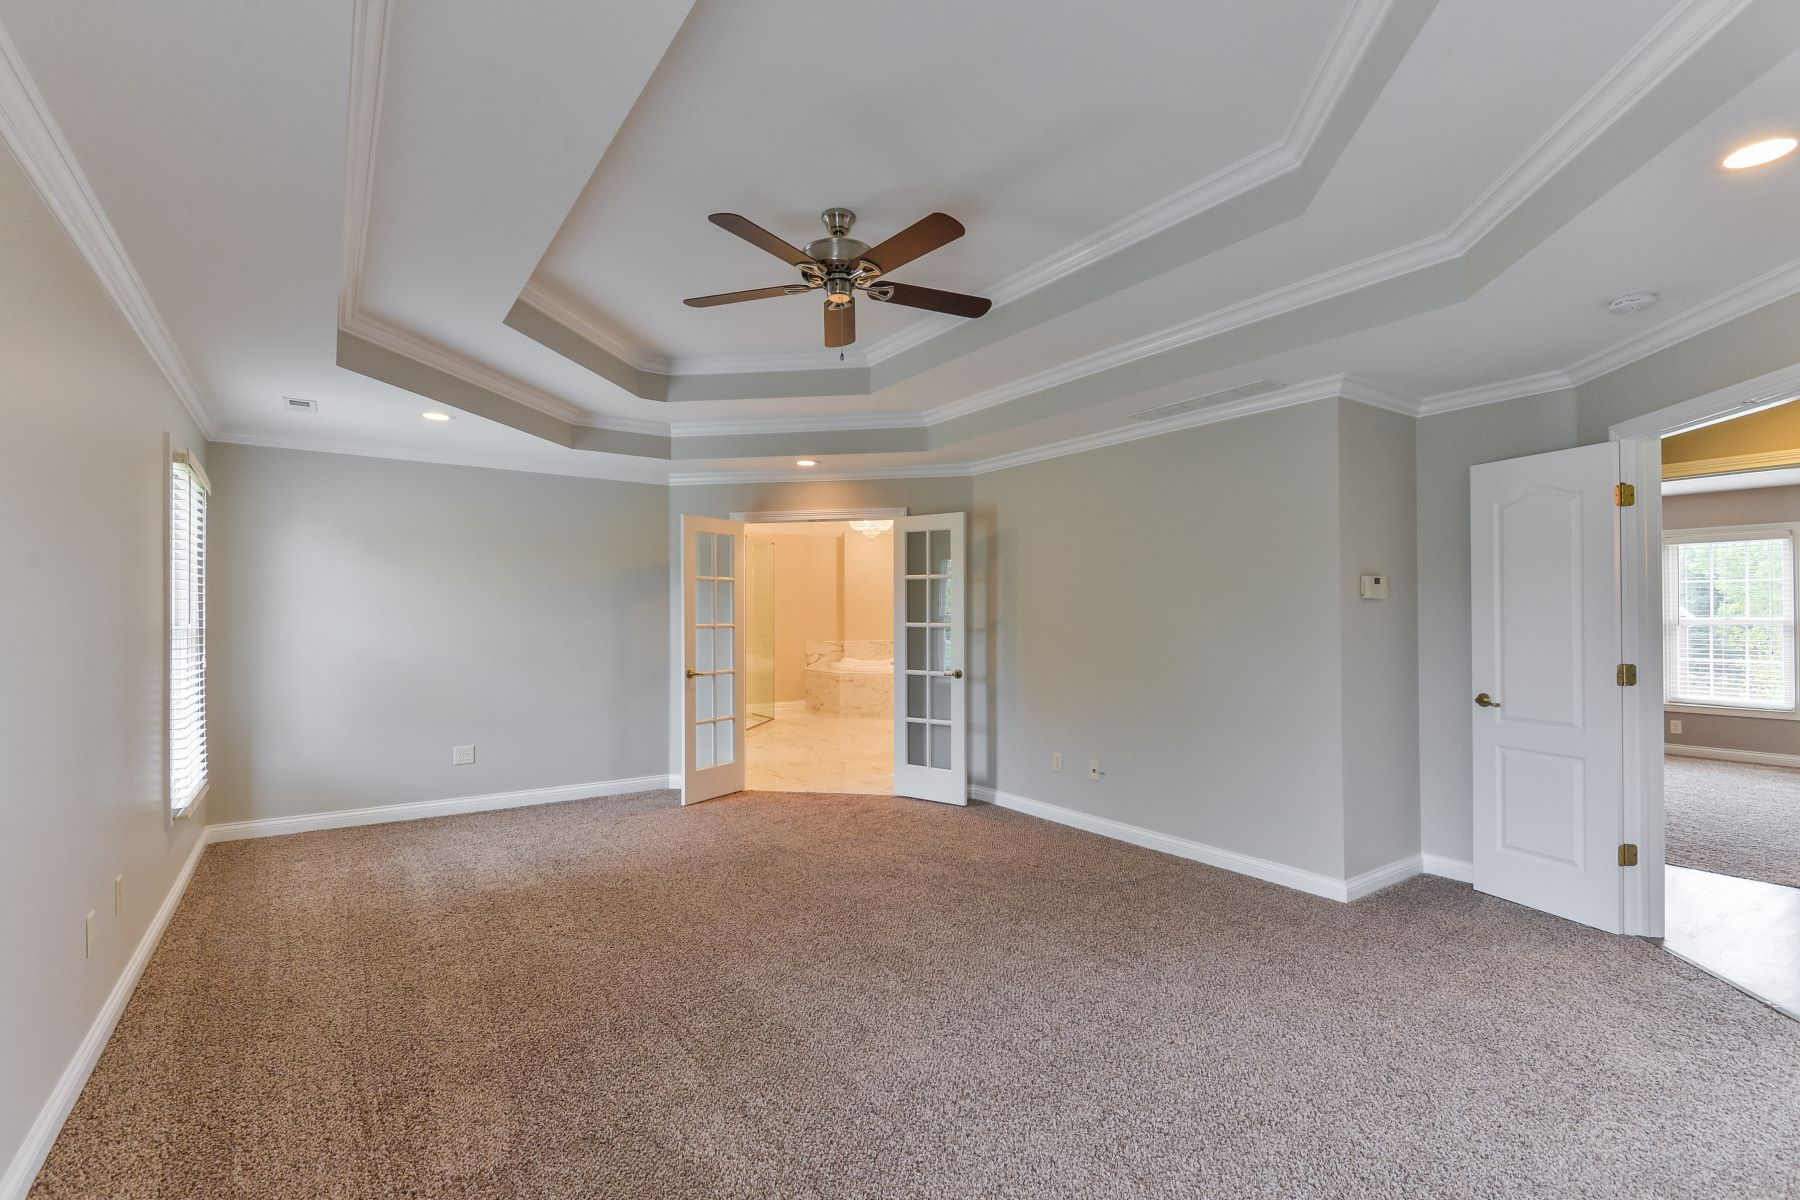 Additional photo for property listing at 3425 Lafittes Cove 3425 Lafittes Cove Floyds Knobs, Indiana 47119 United States